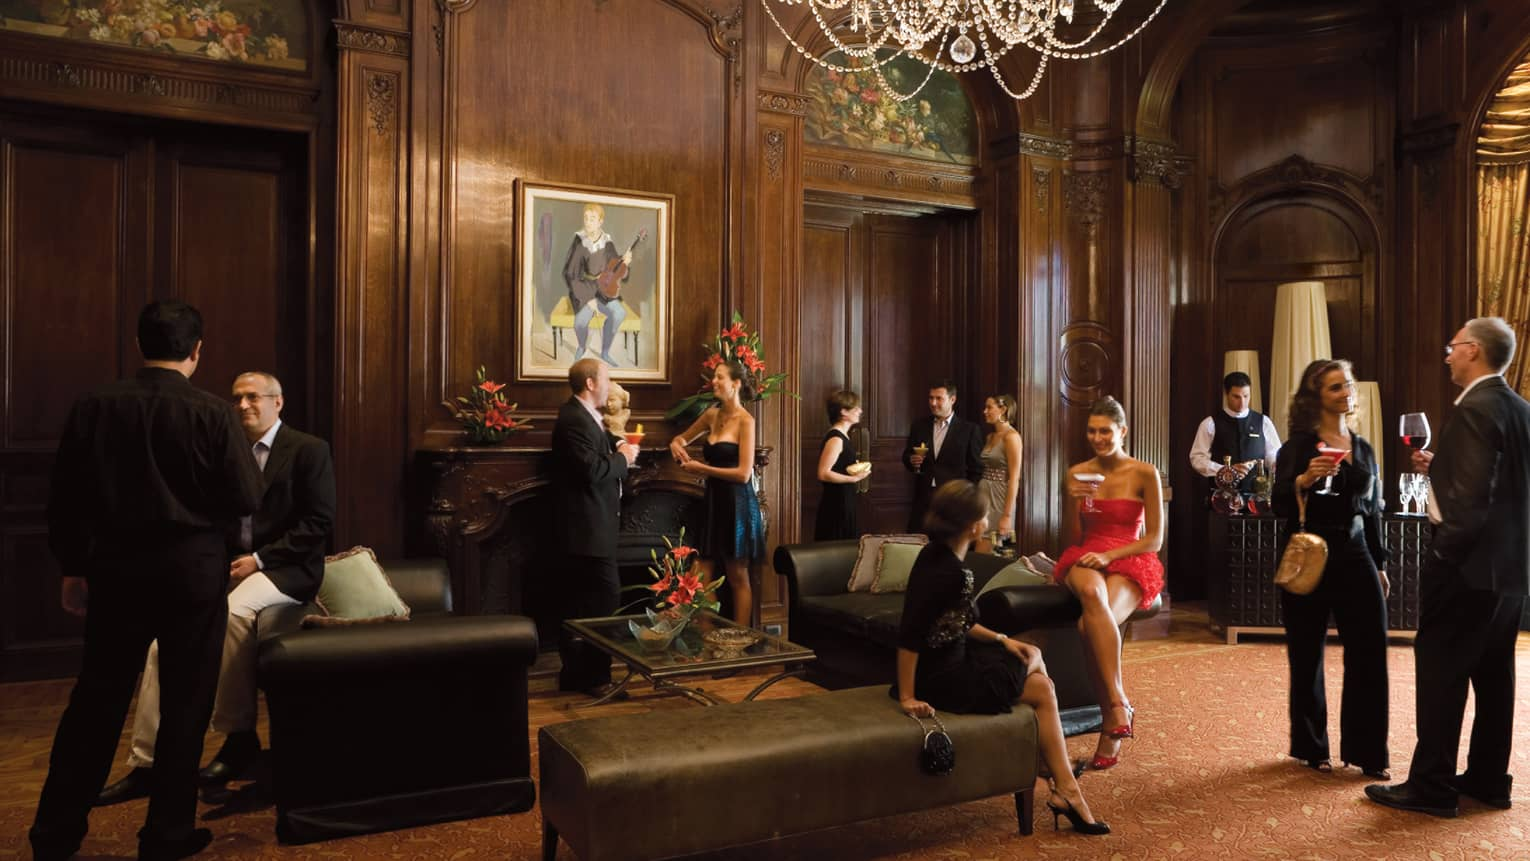 People wearing cocktail attire socialize in elegant ballroom with wood walls, crystal chandelier, leather benches